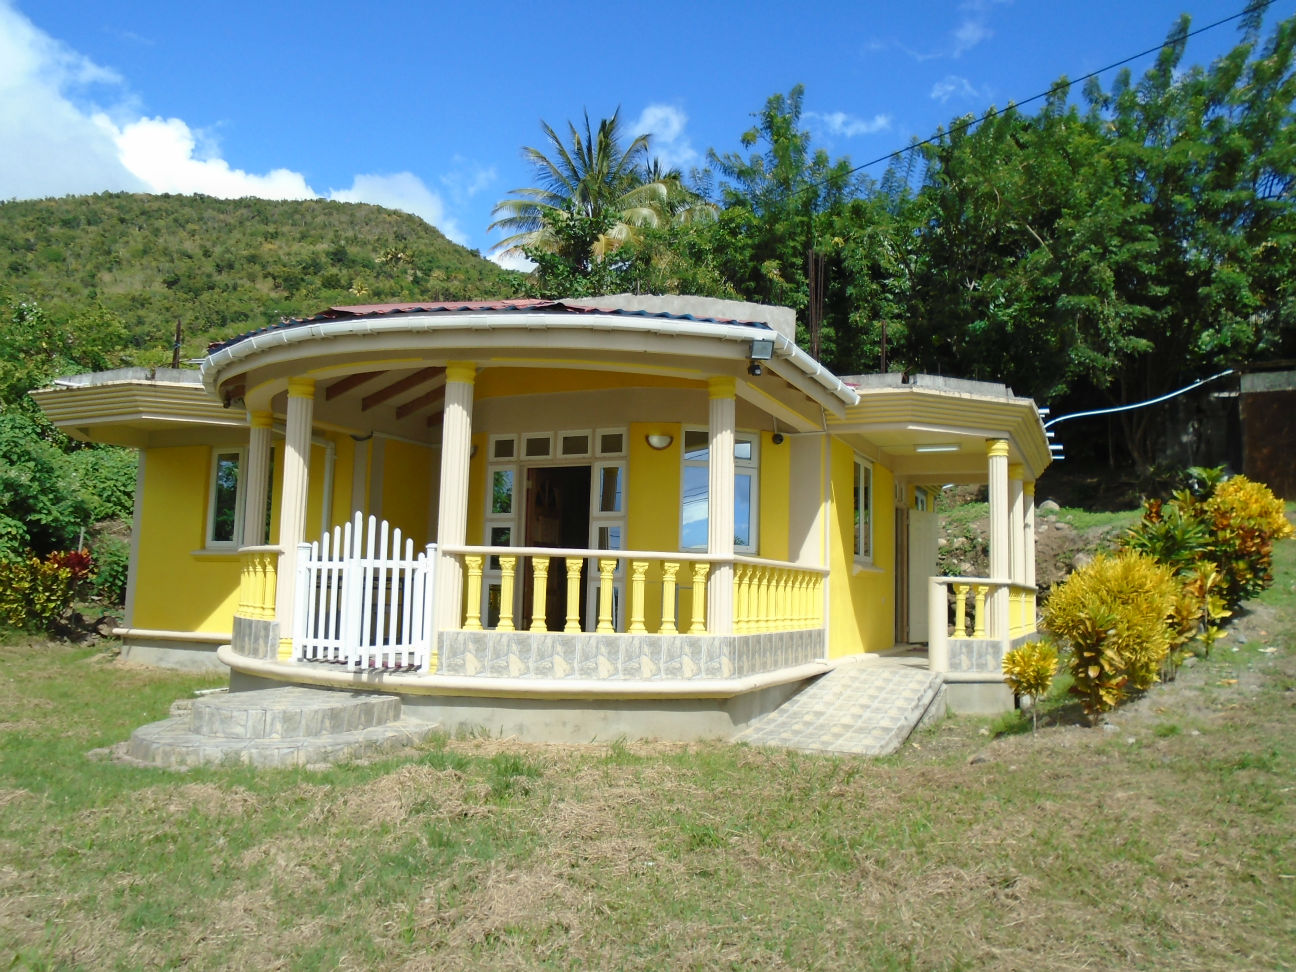 2 Bedroom Home For Rent In Jimmit (RENTED OUT) Jimmit, Saint Paul